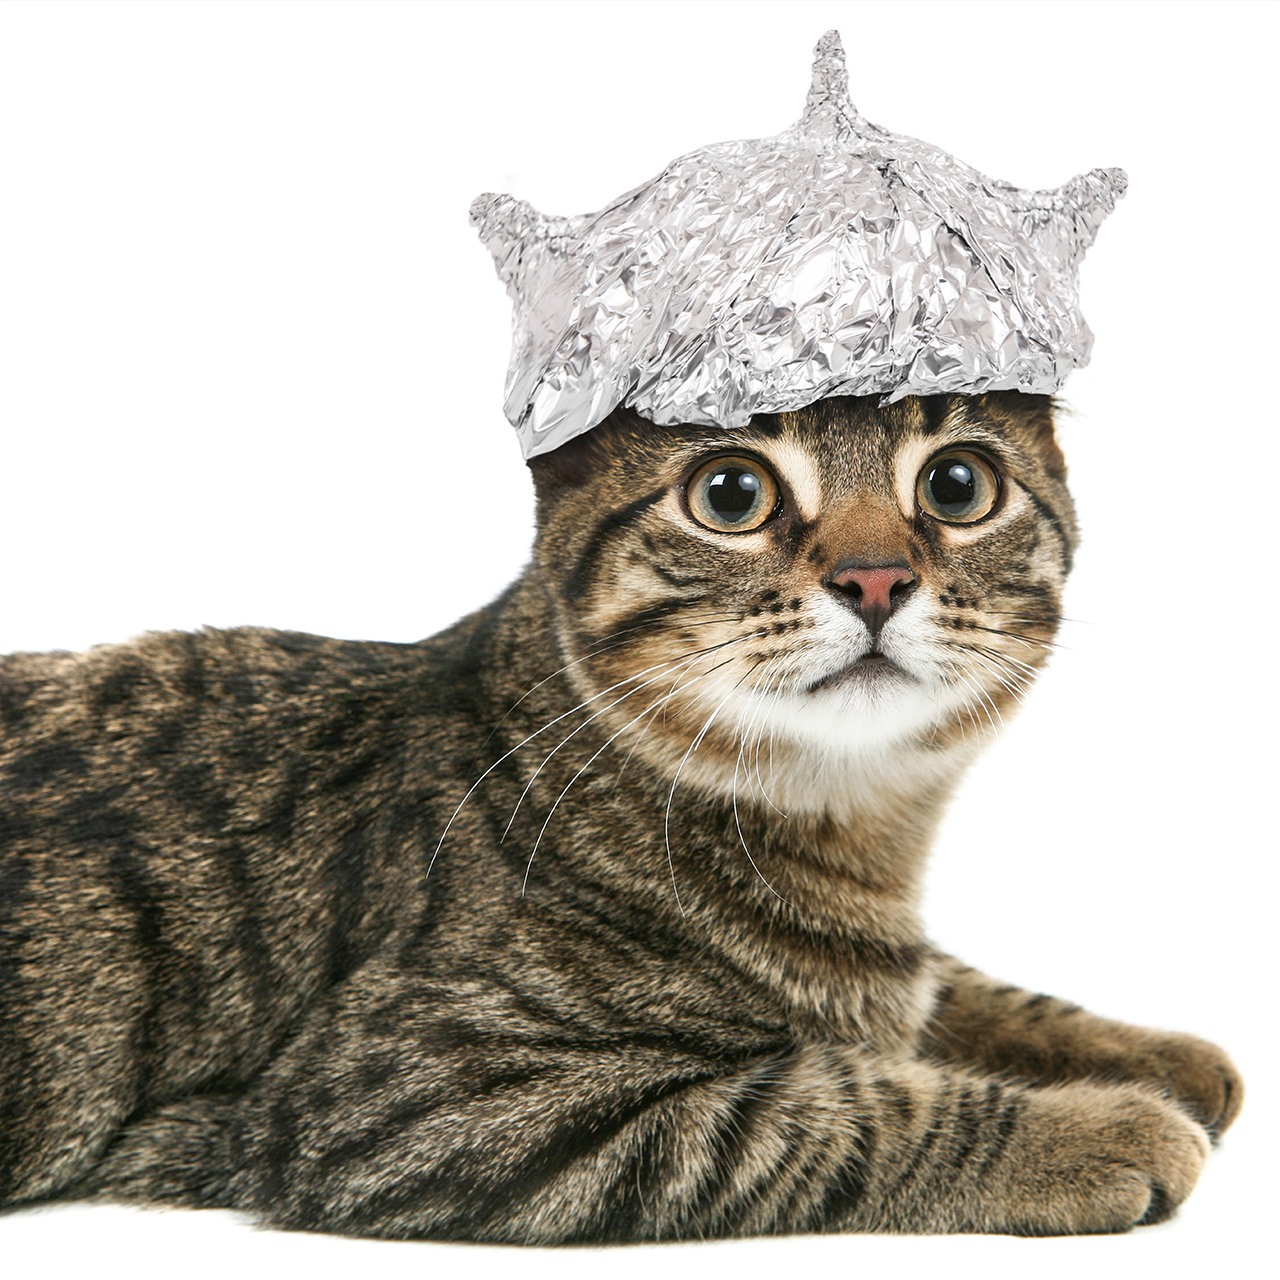 Celebrate Tin Foil Hat Day 2016